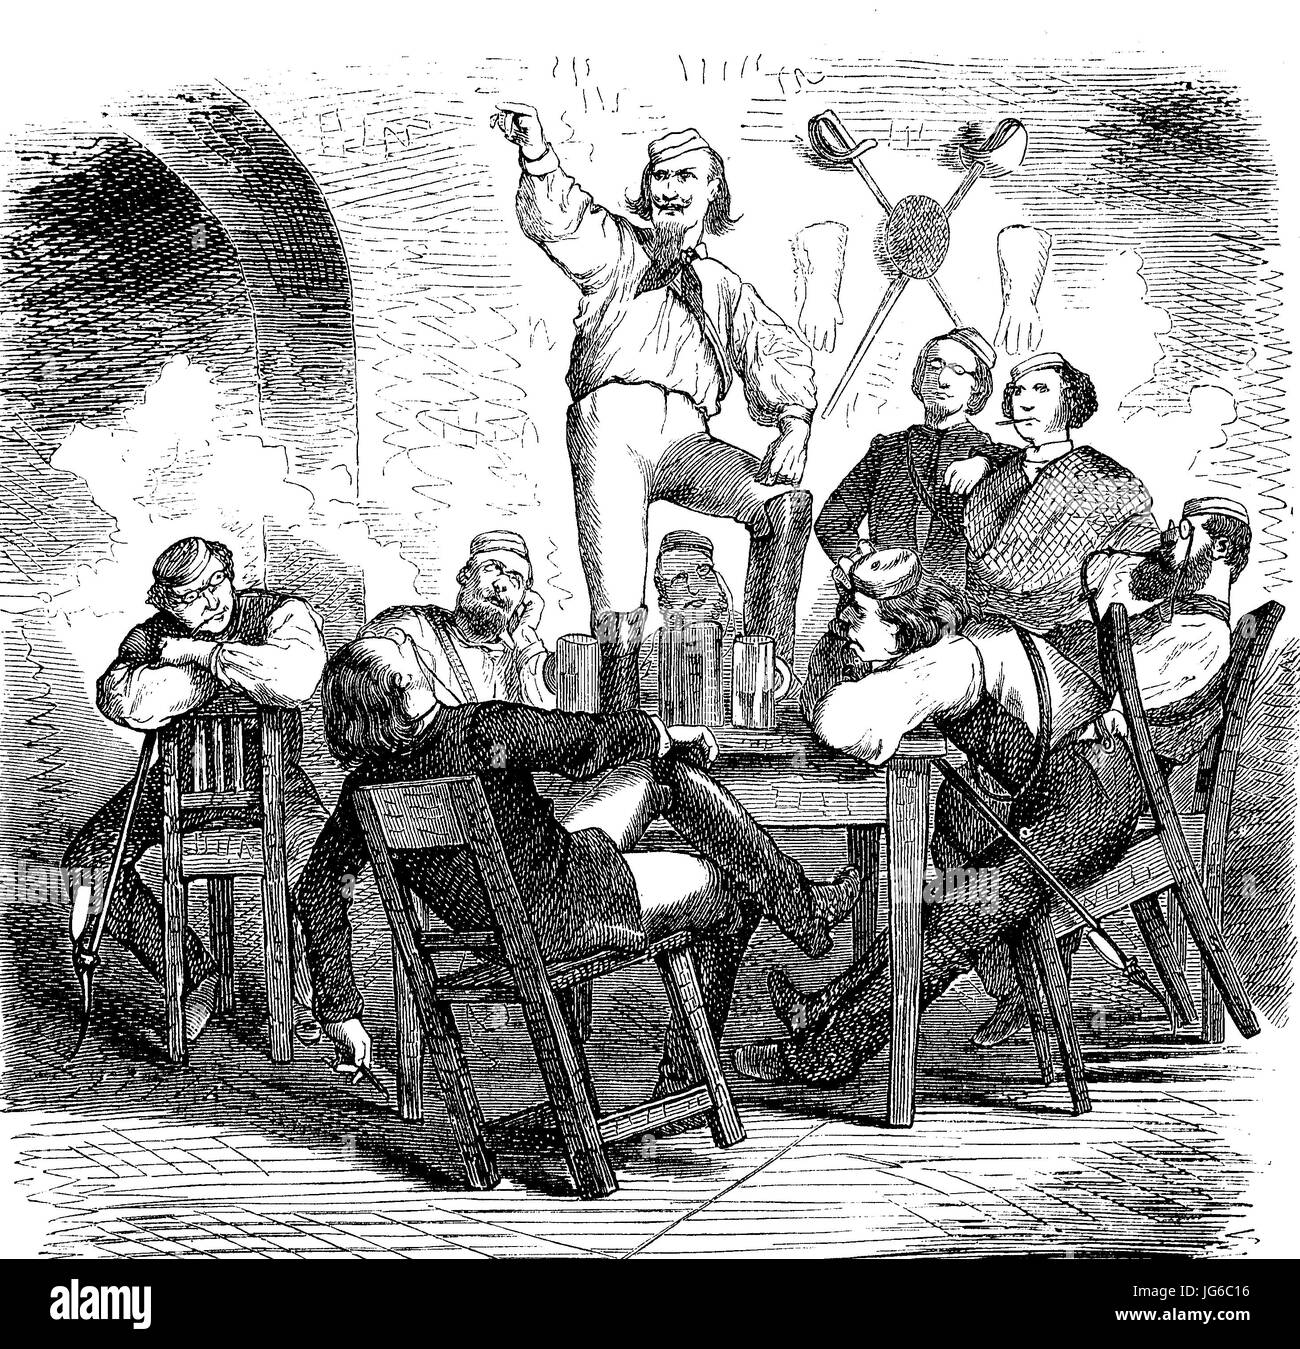 Digital improved:, Students in a student bar, illustration from the 19th century Stock Photo